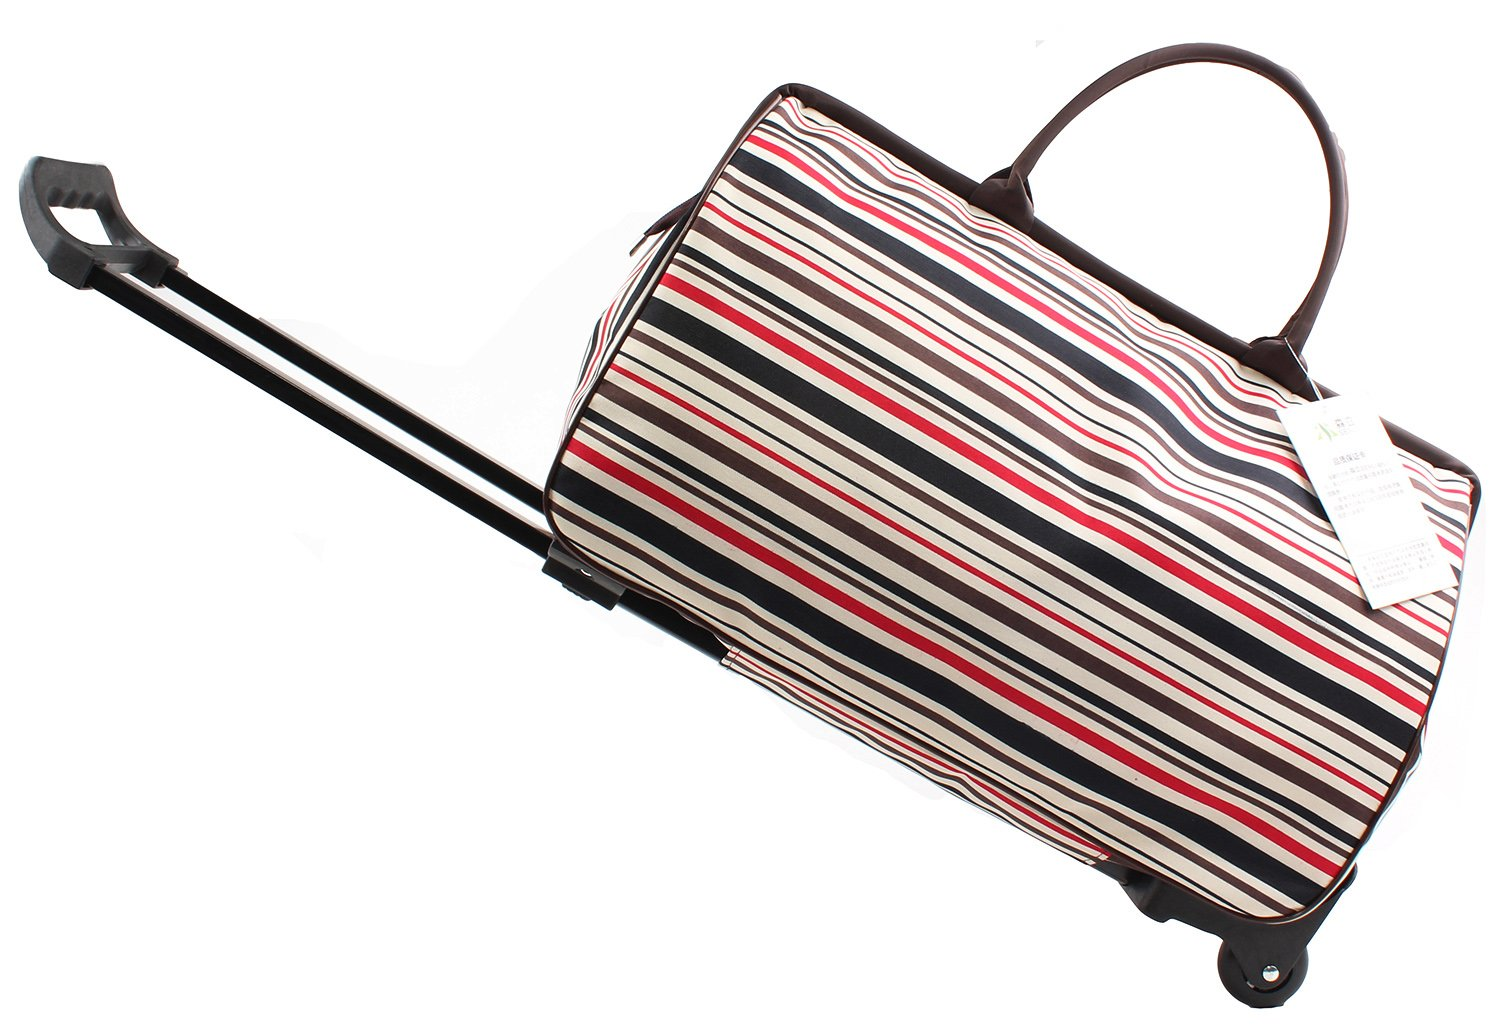 Jeemiter 20inch Luggage Rolling Duffle trolley travel bag tote Carry-On with red grid printed for Women Short Term Trips Weekend Excursion